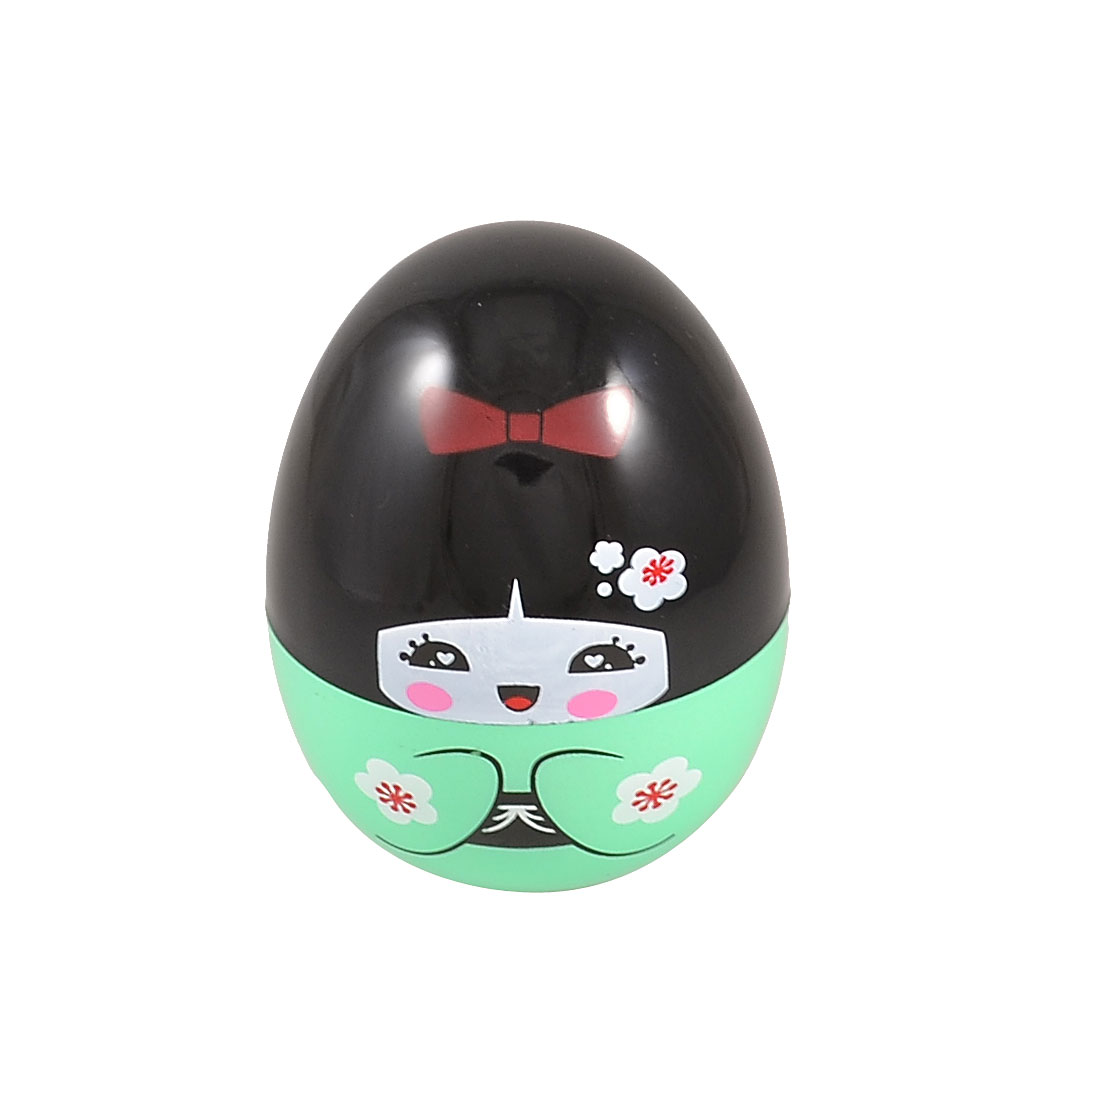 Green Black Plastic Japanese Doll Pattern Tumbler Egg Style Toothpick Box